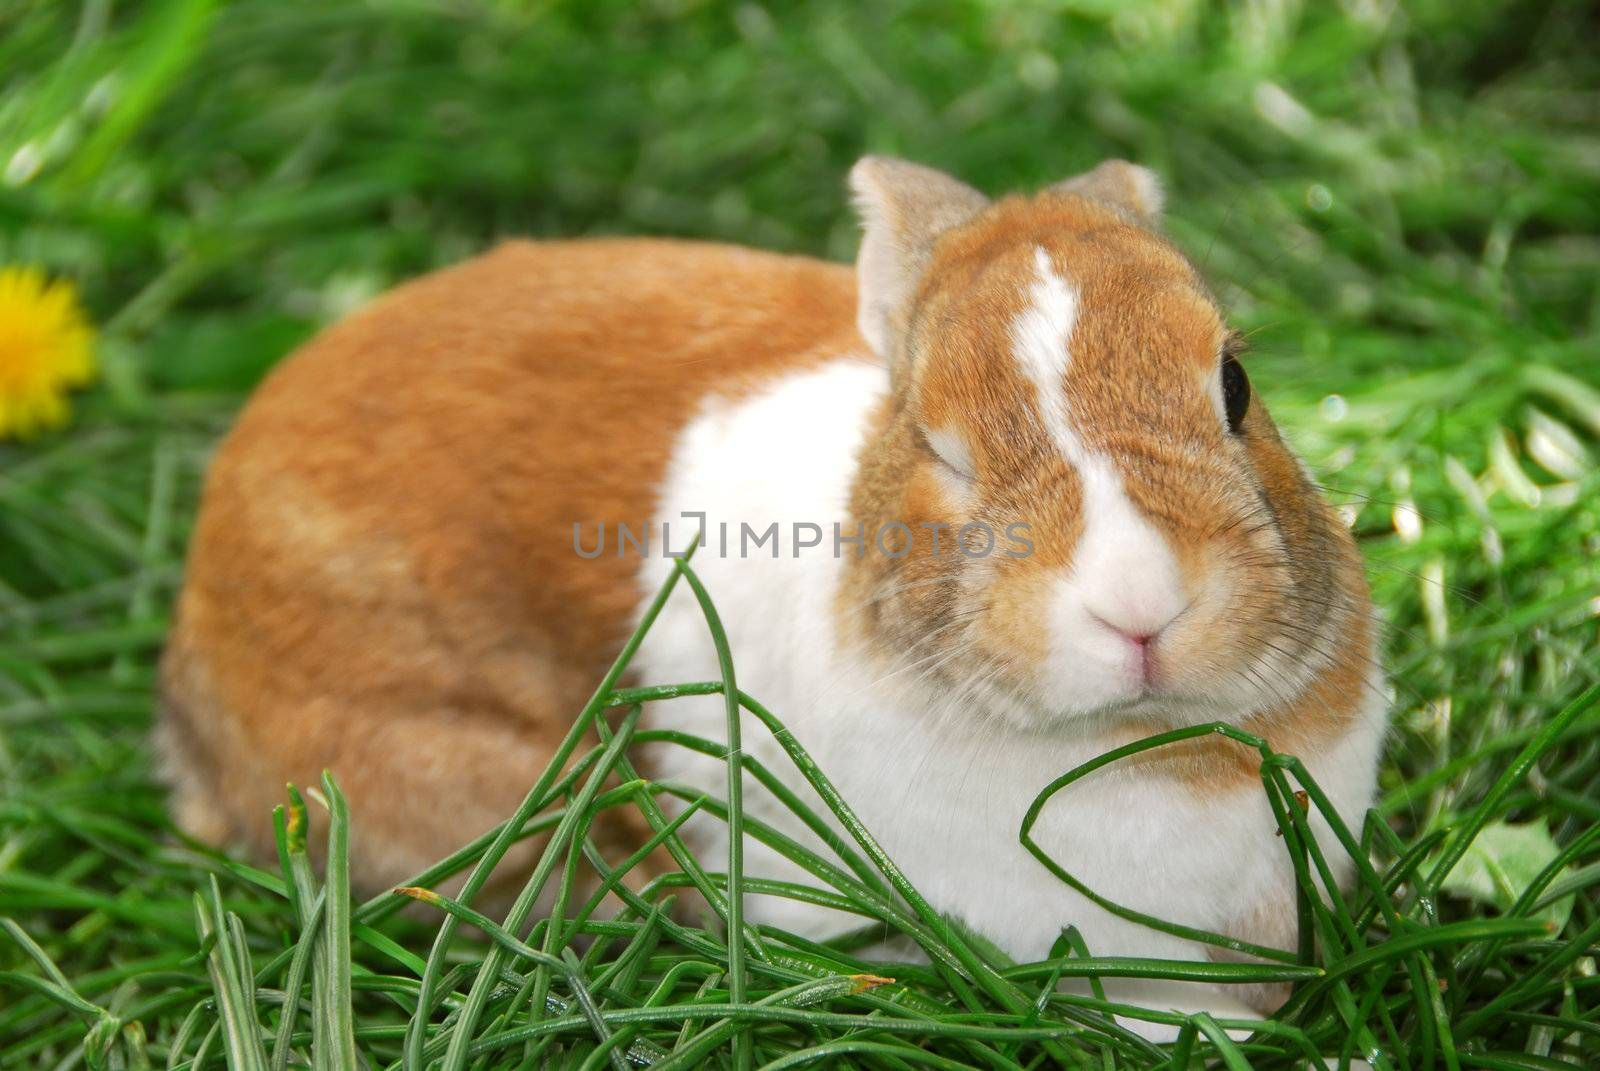 Cute easter bunny sitting on green grass and winking:)